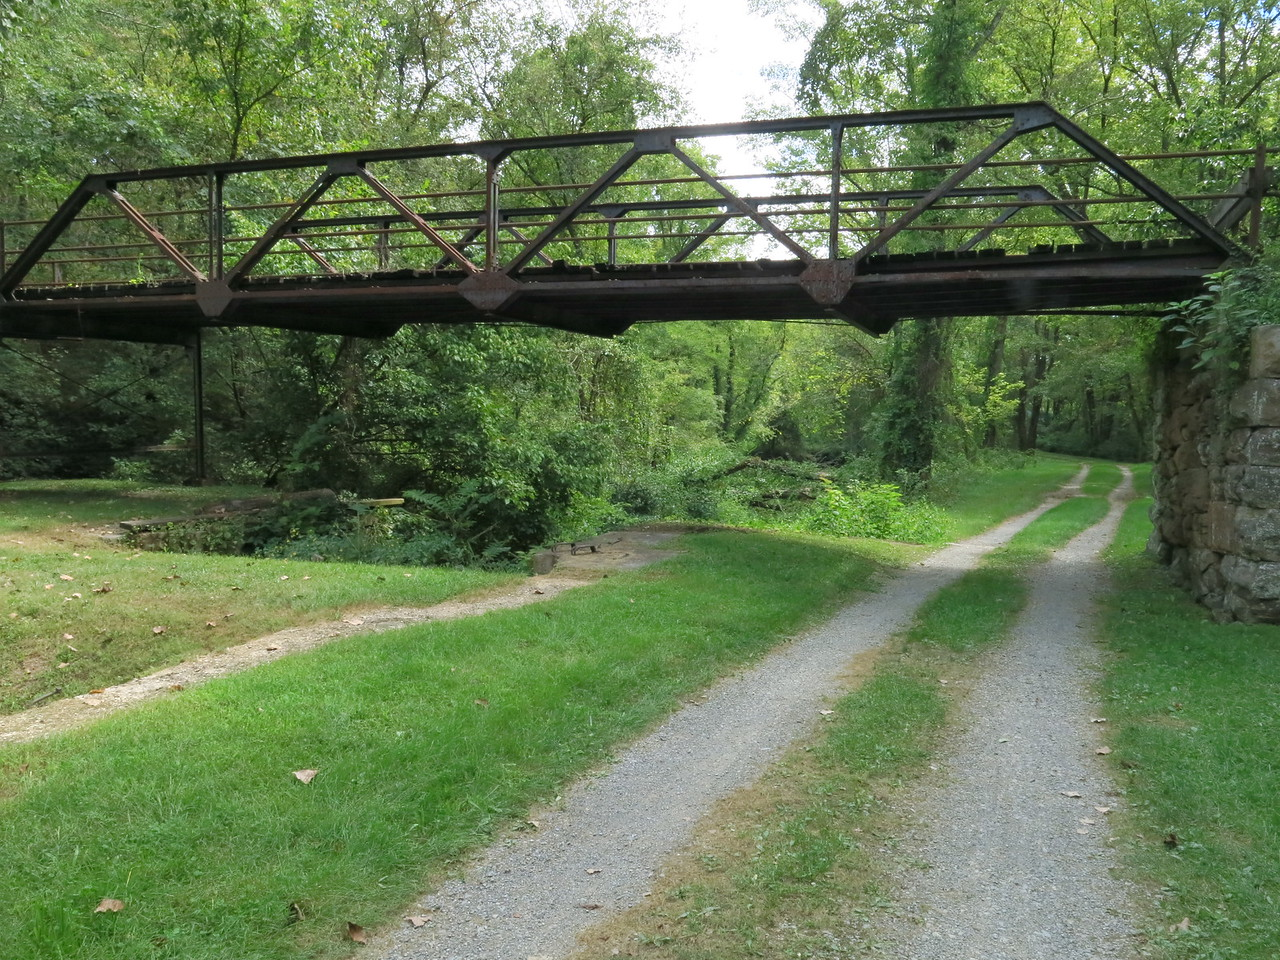 Another view of the bridge and downstream towpath at Lock 68